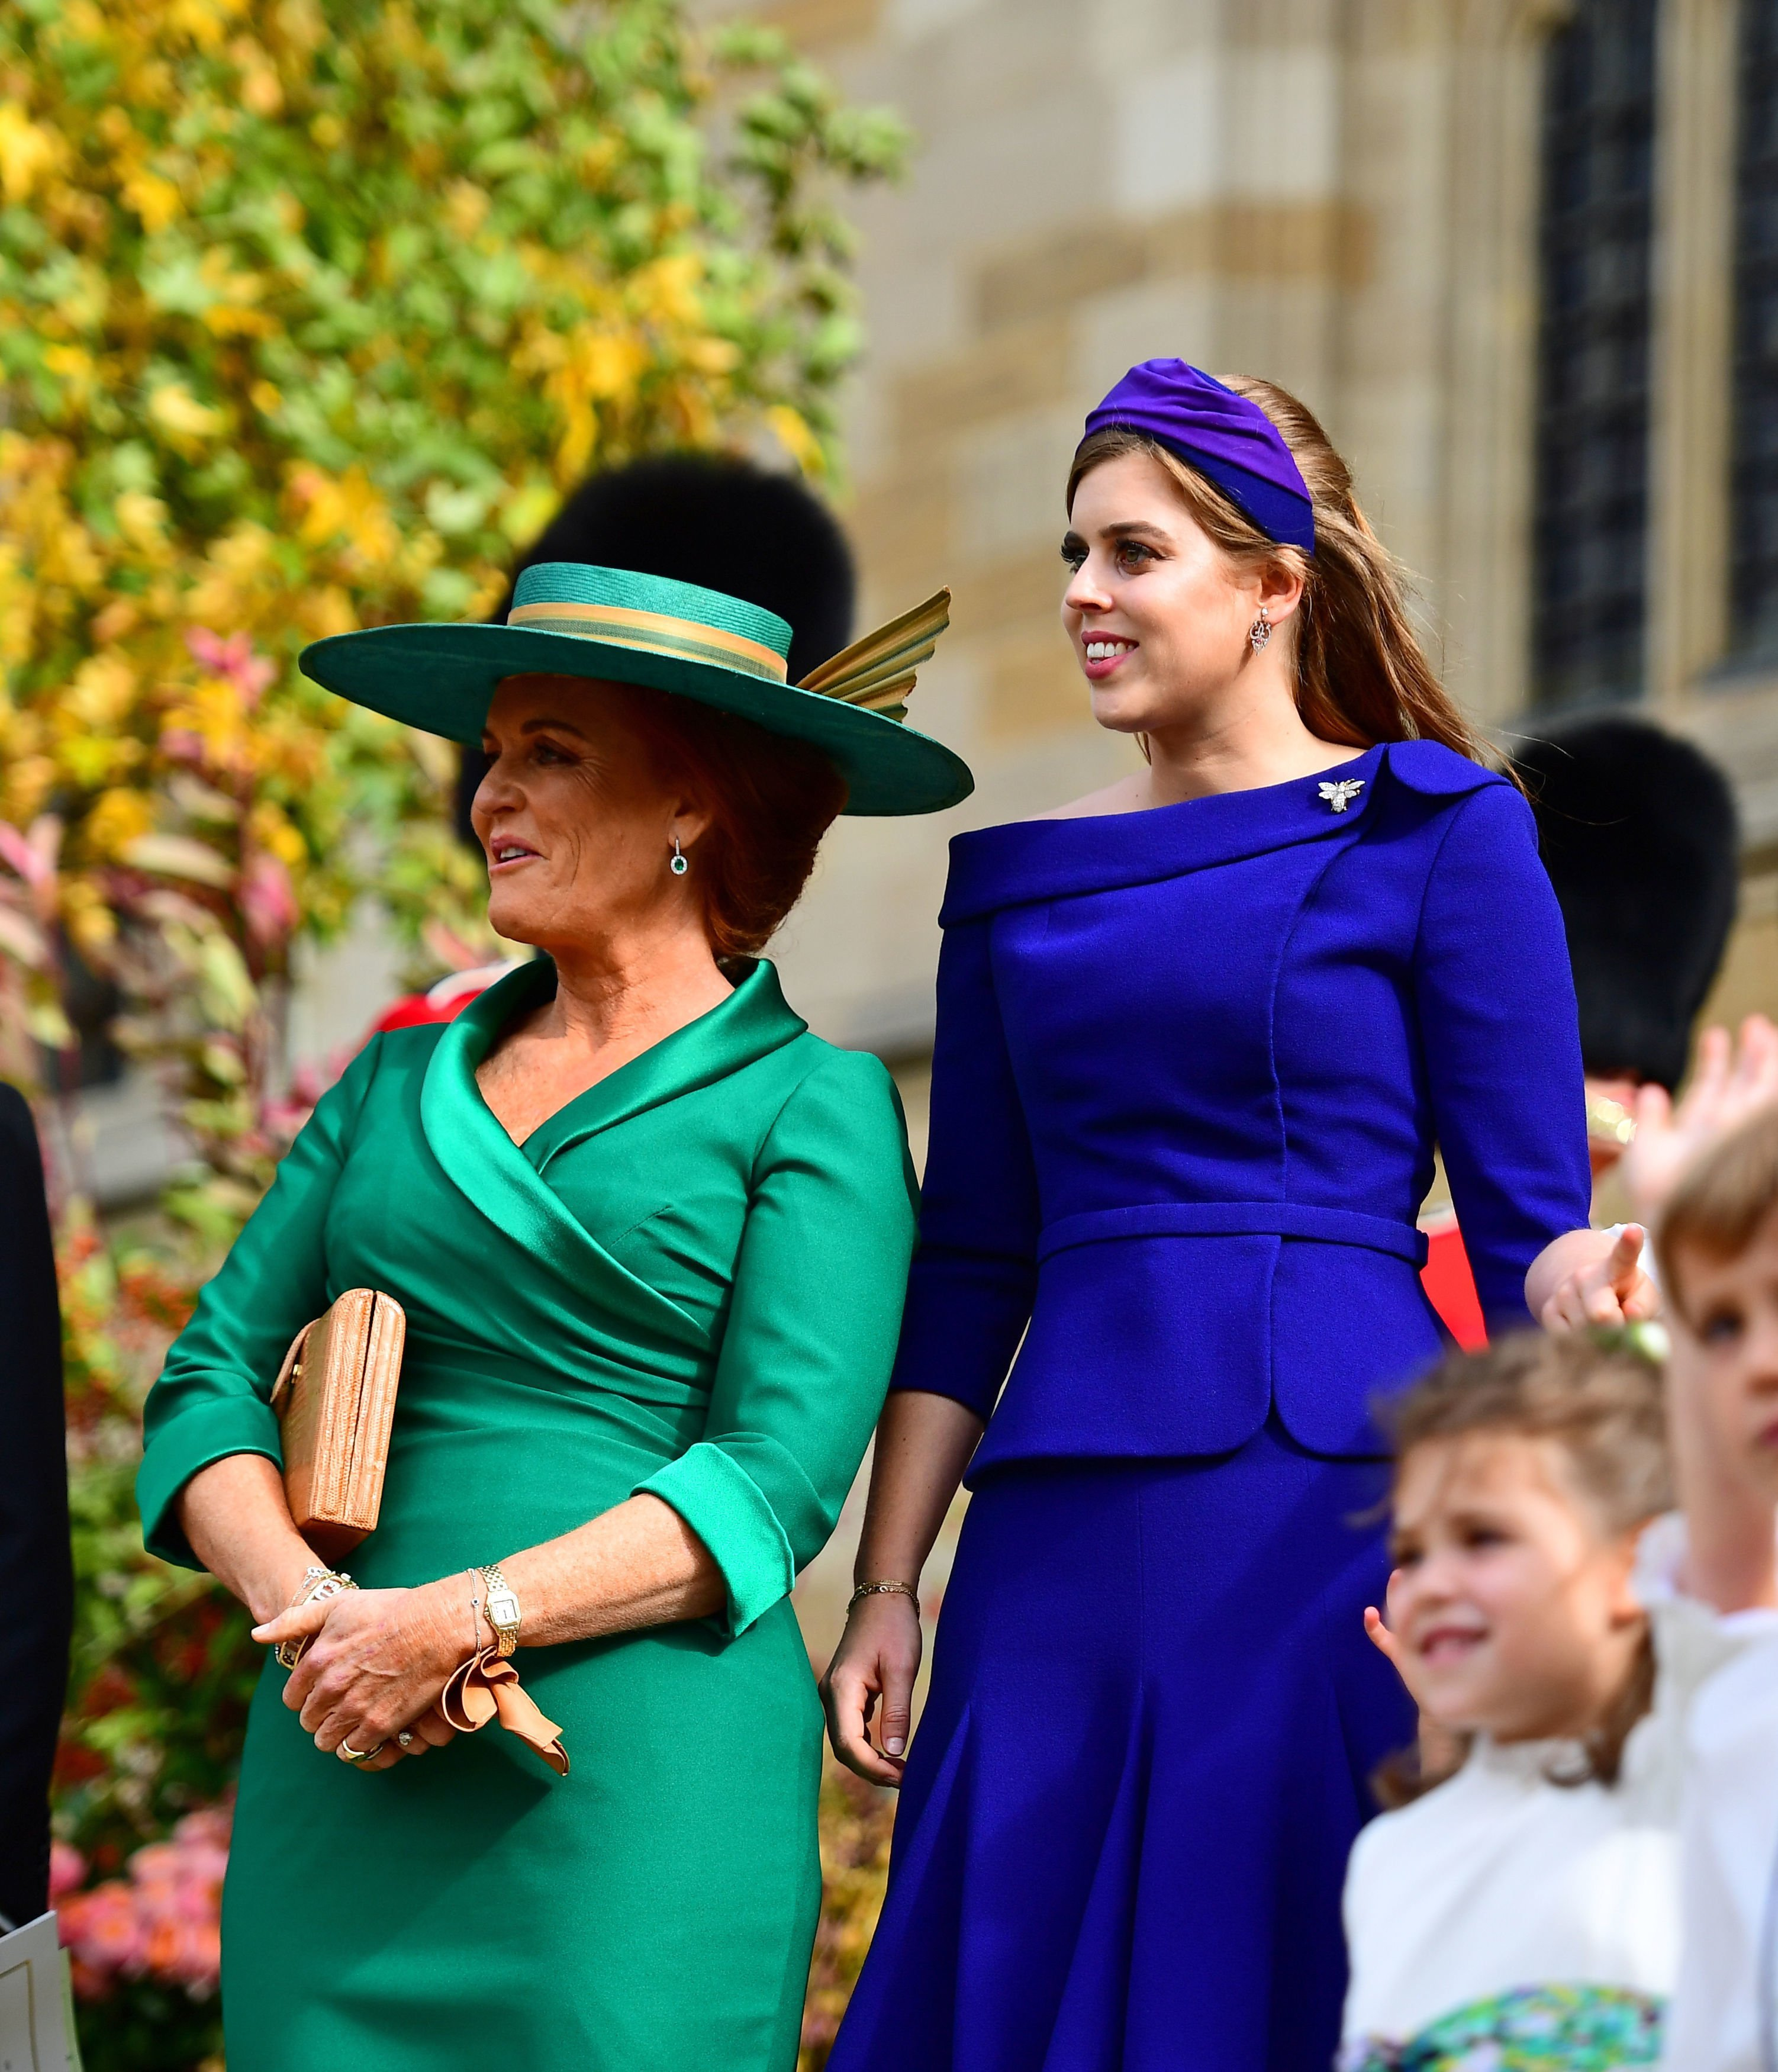 Sarah Ferguson and her daughter Princess Beatrice at Princess Eugenie's royal wedding in October 2018 | Photo: Getty Images